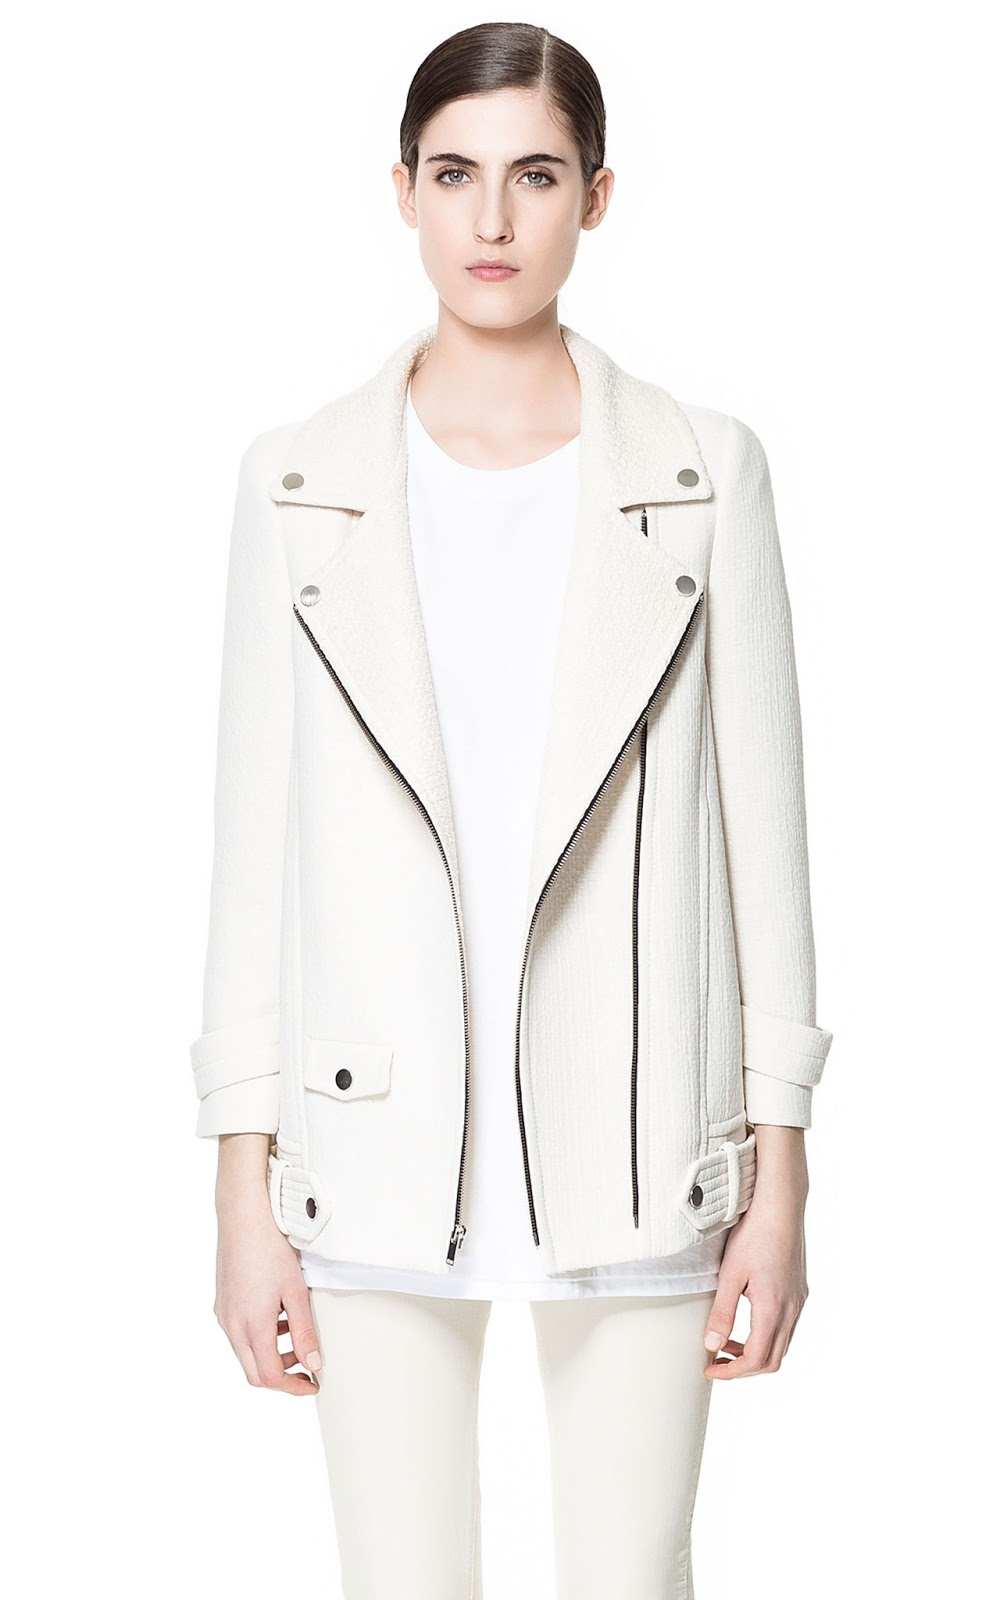 ZARA NEW COLLECTION 2013. SPRING COMBINATION COAT JACKET WITH ZIPS. BLOGGERS. | eBay